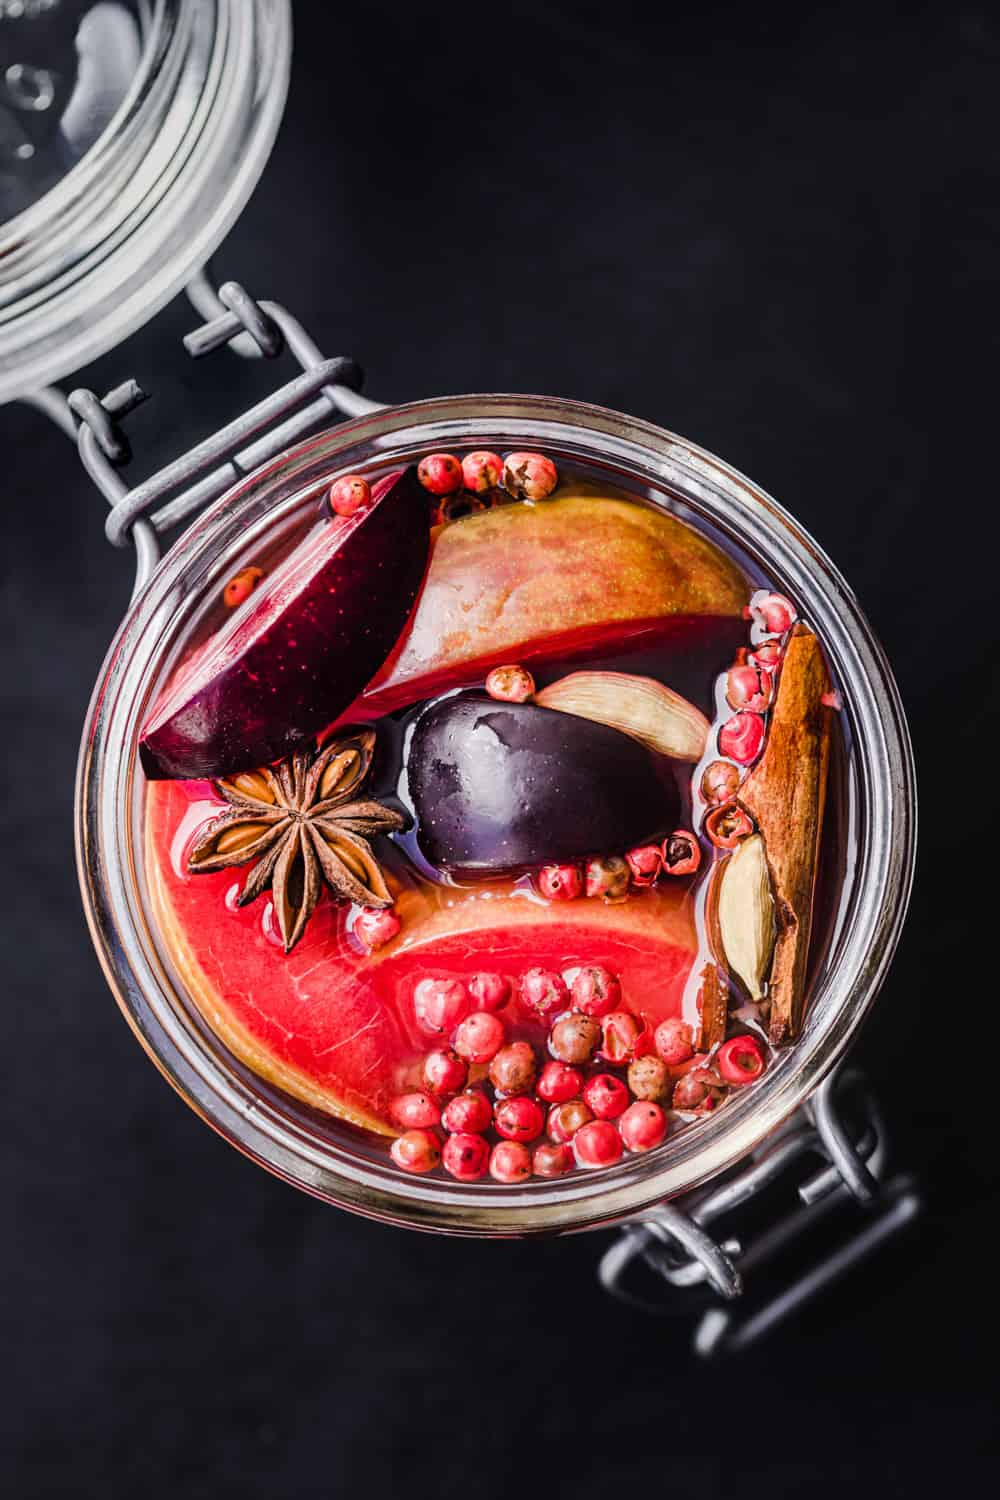 Pickled plums with star anise, cinnamon, pink peppercorns and pickling brine, overhead shot on a black background.